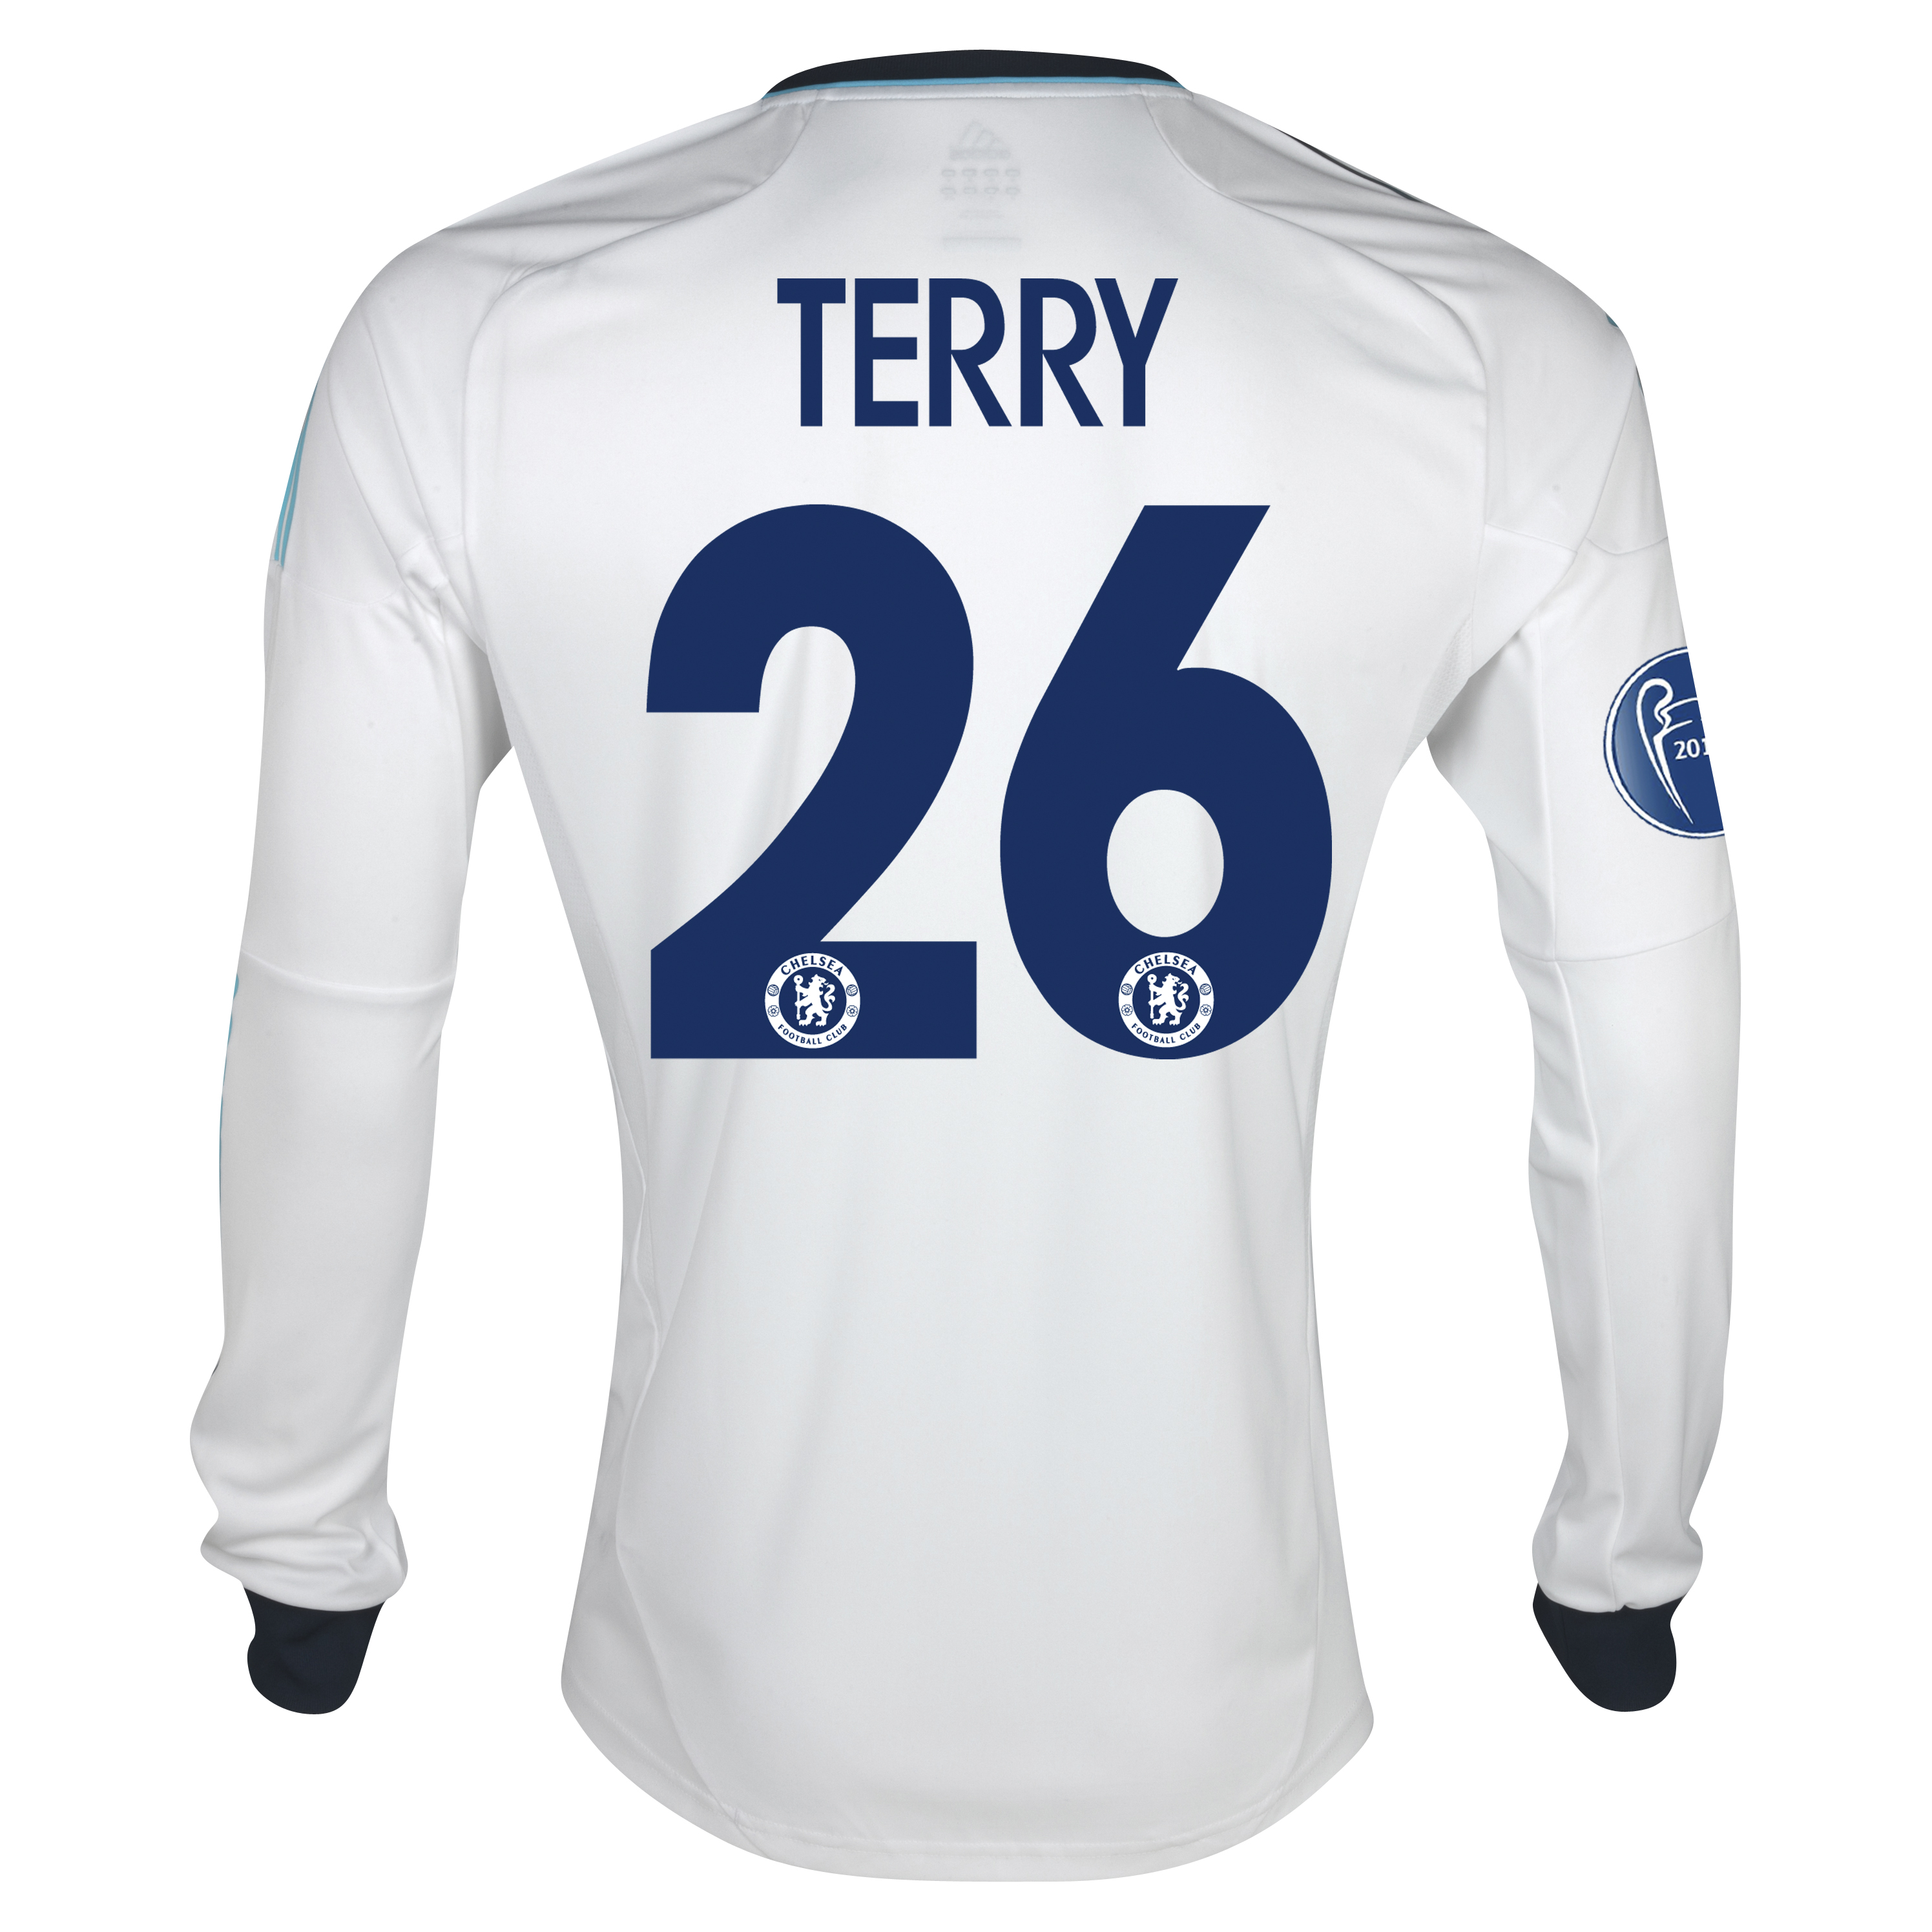 Chelsea UEFA Champions League Away Shirt 2012/13 - Long Sleeved - Kids with Terry 26 printing